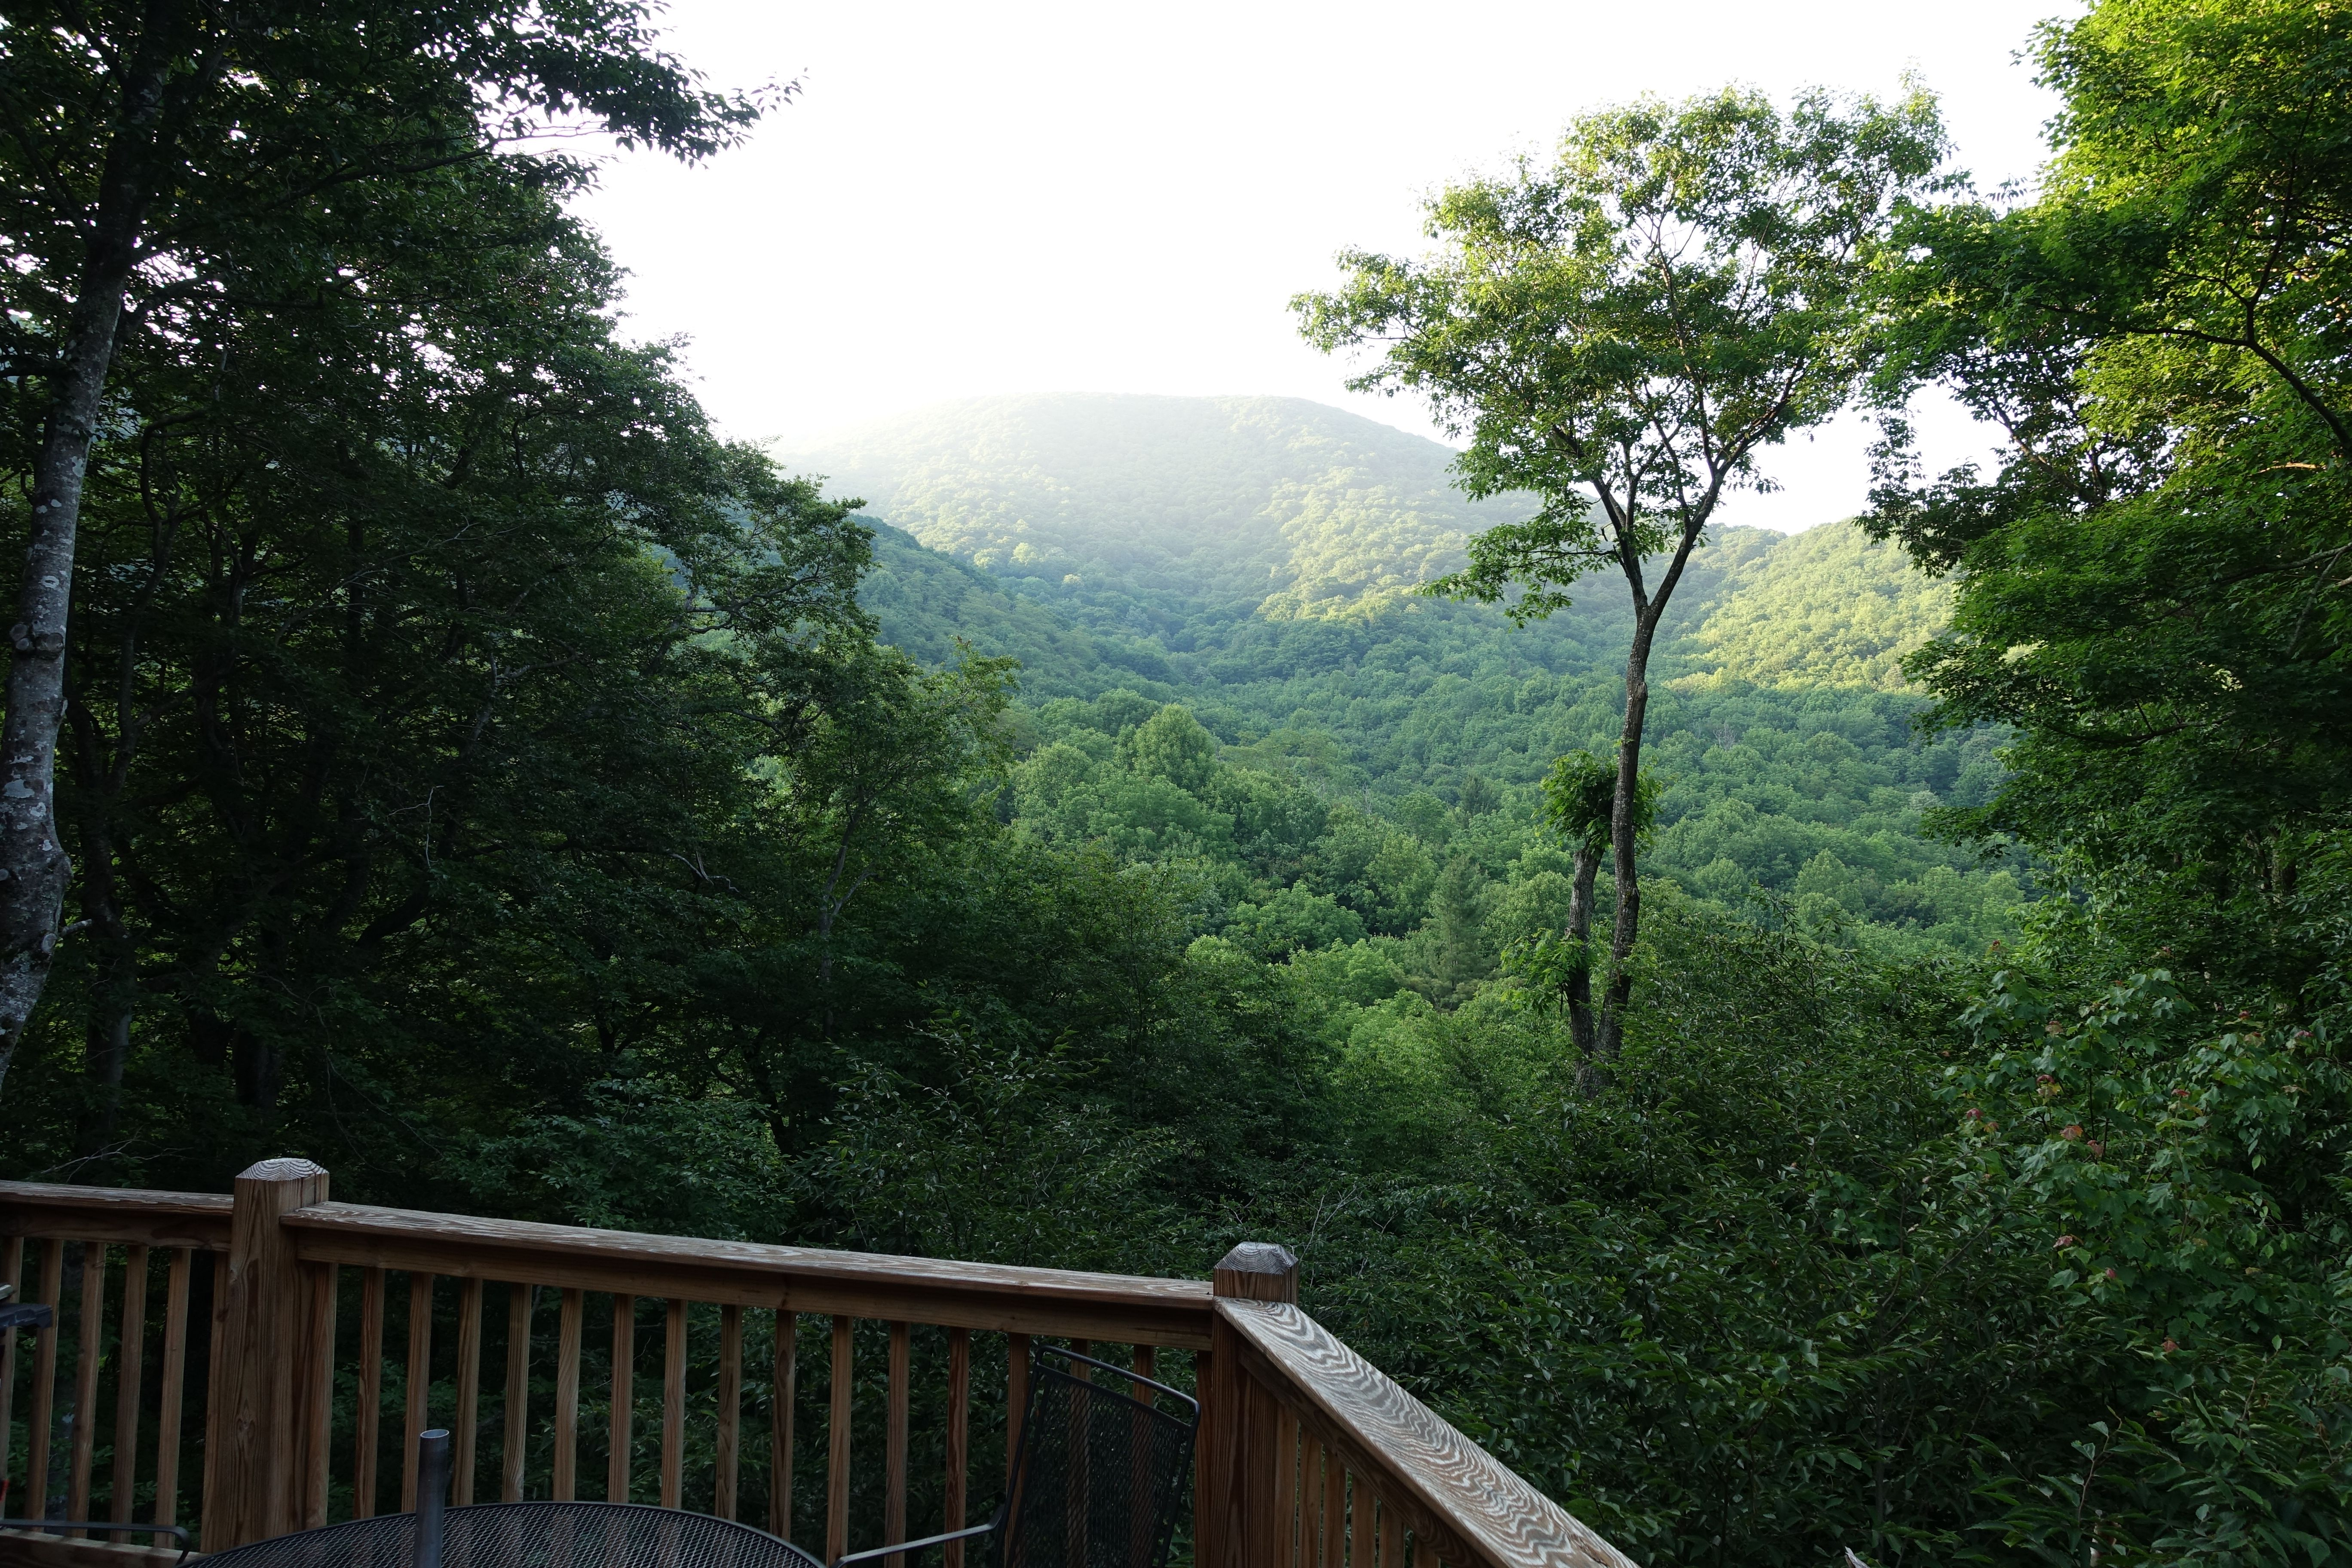 trout fishing game cabin boone carolina mountain hot with tub rentals north room large asheville cabins groups log for